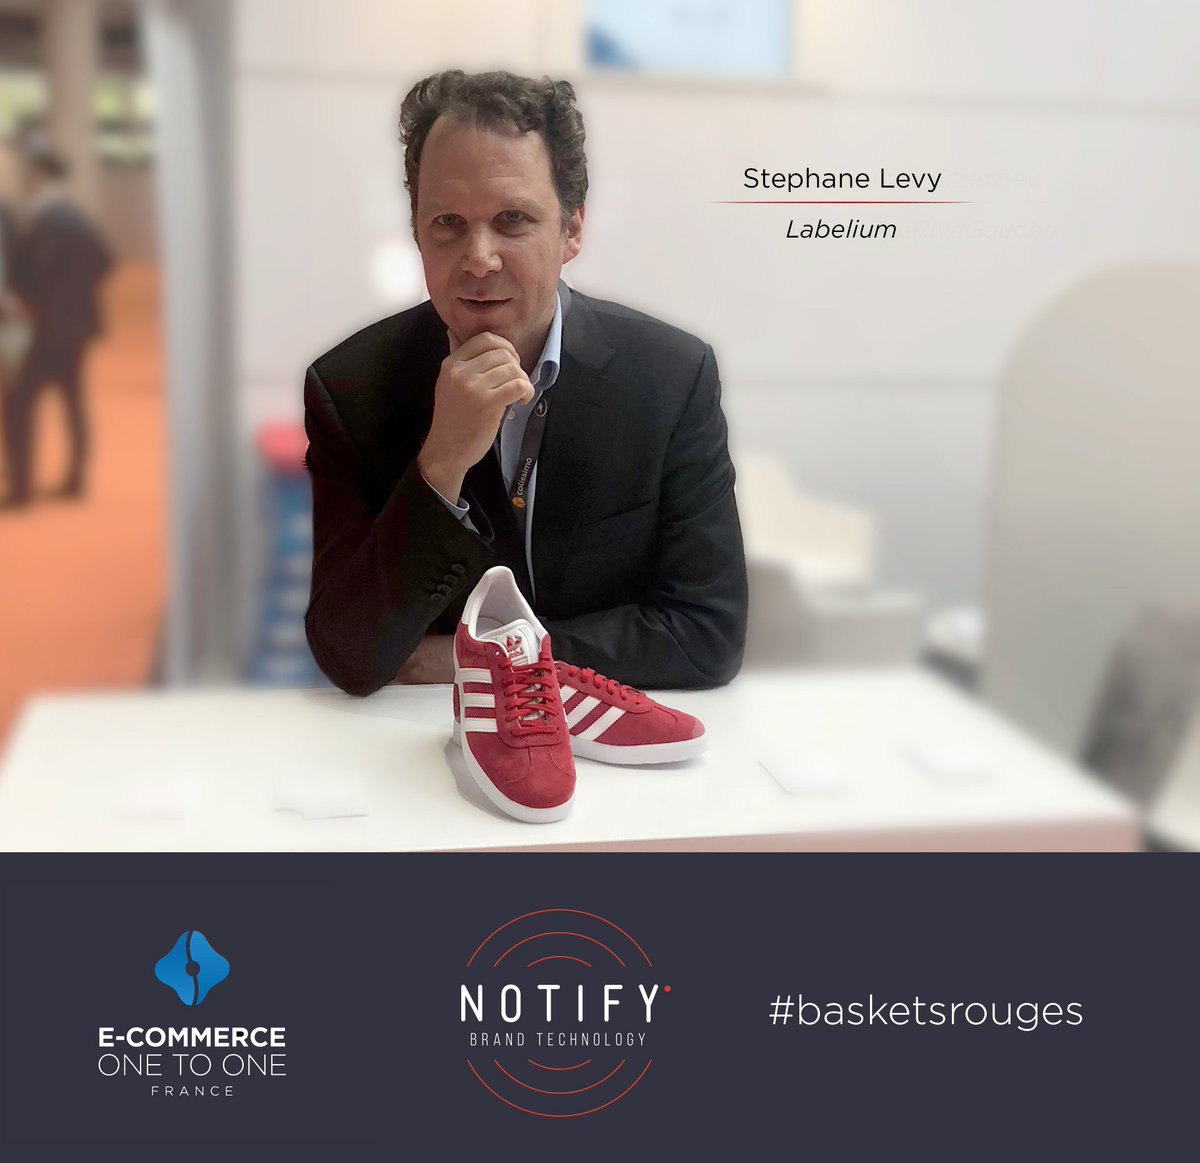 #MeetUs ! Stéphane Levy @labelium chausse les #basketsrouges de @Notify au @ecommerce1to1 #Tempsreel #Ecommerce #EC1to1